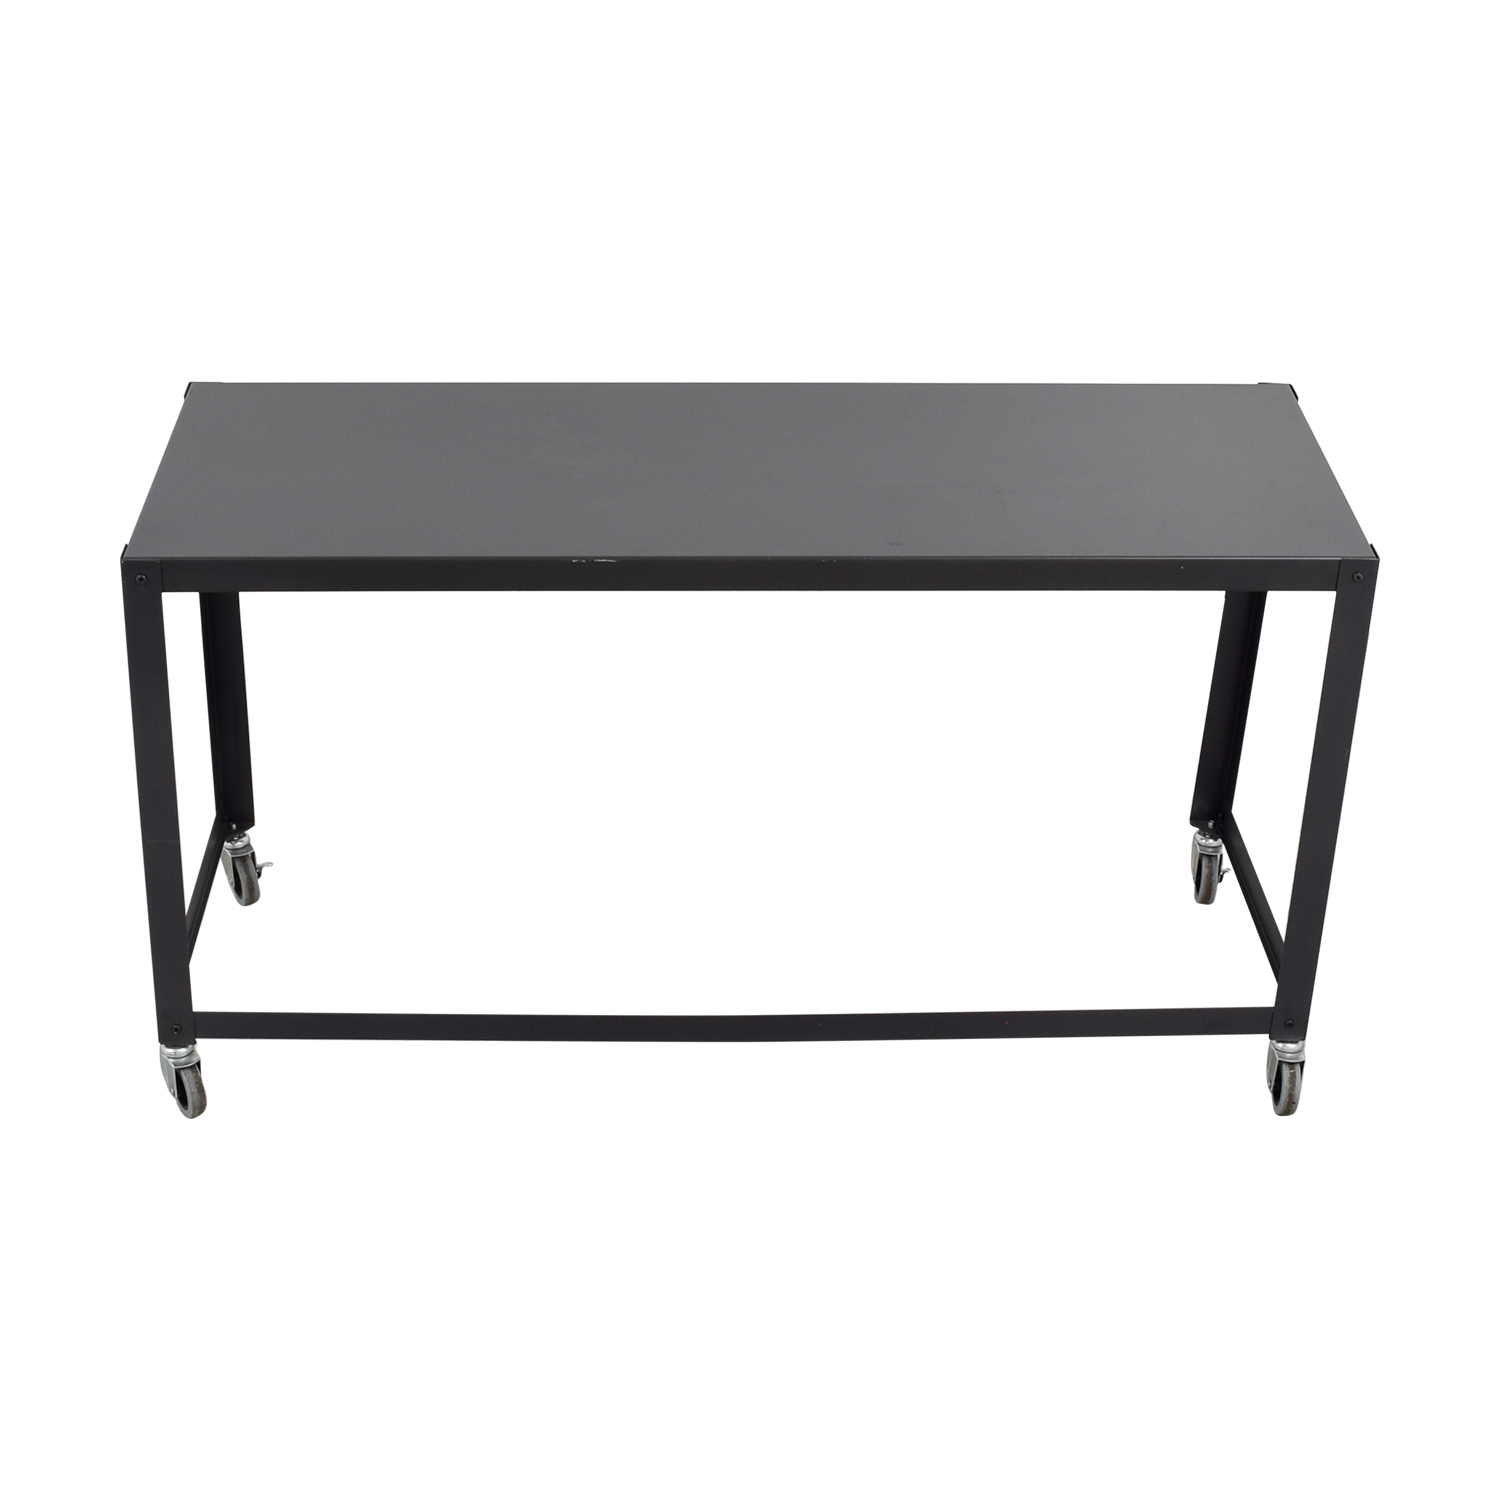 buy Grey Mobile Desk on Castors online